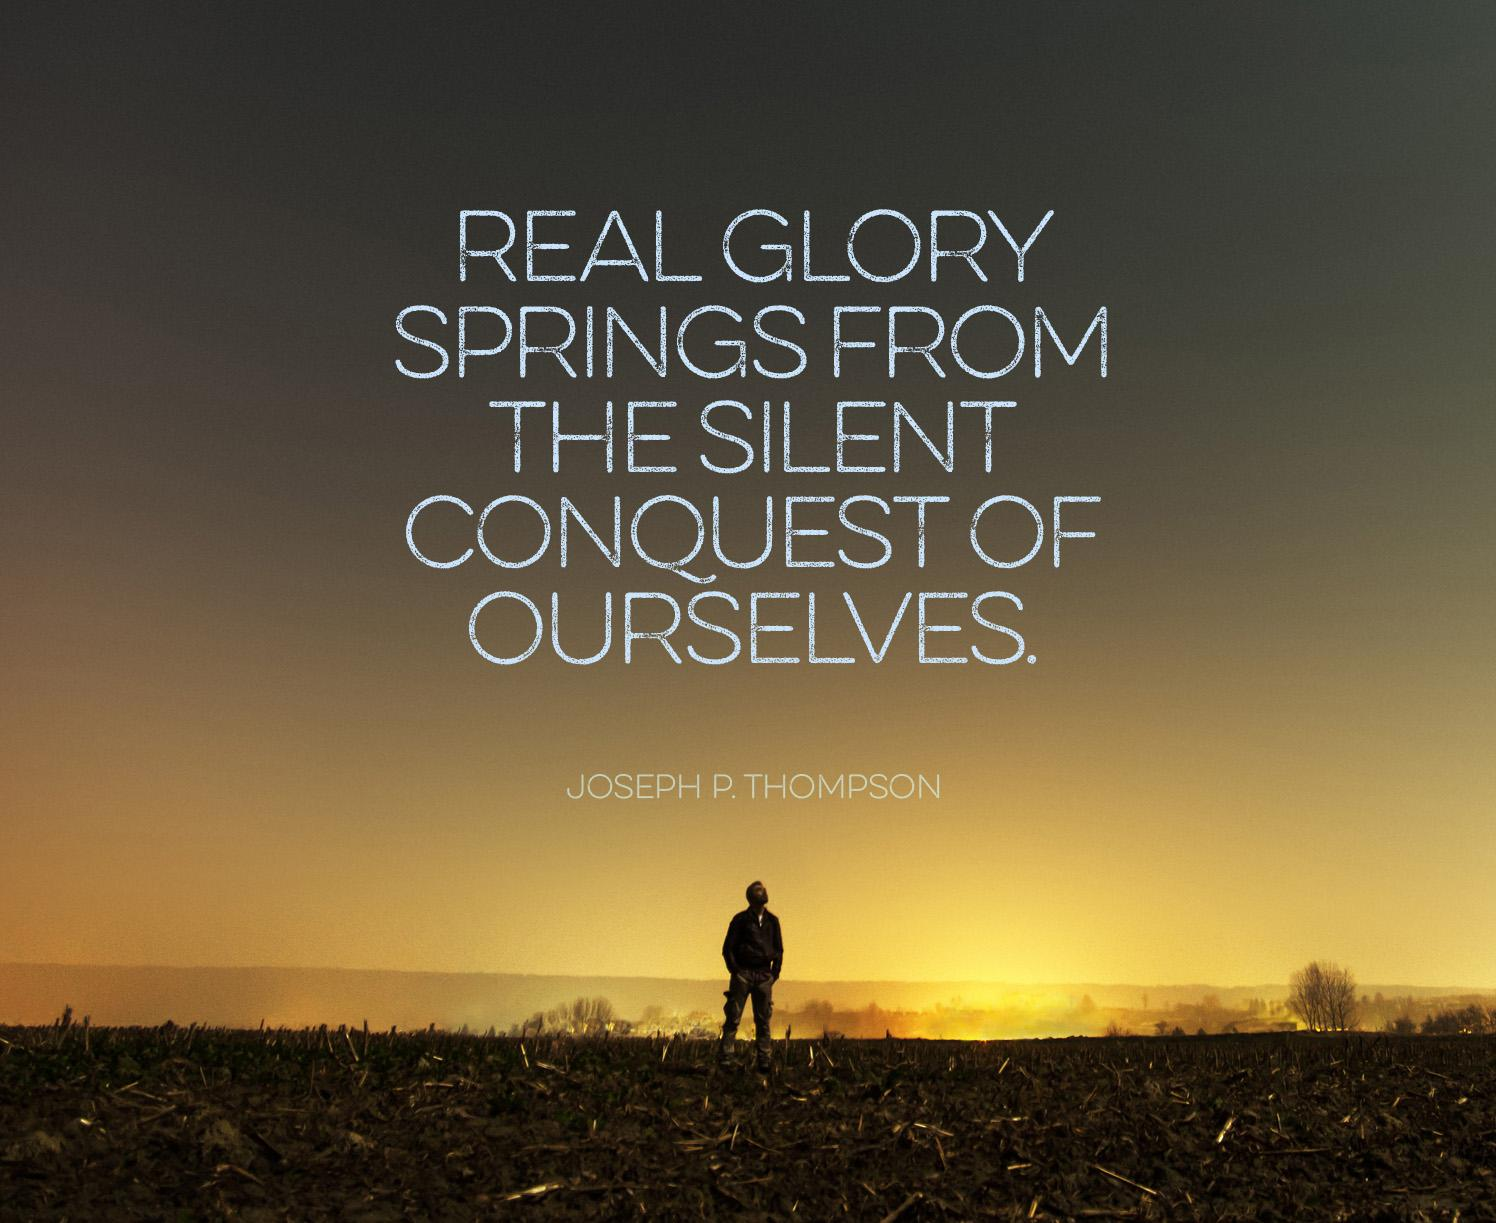 Real glory comes from the silent conquest of ourselves. — Joseph P. Thompson [1496×1223]